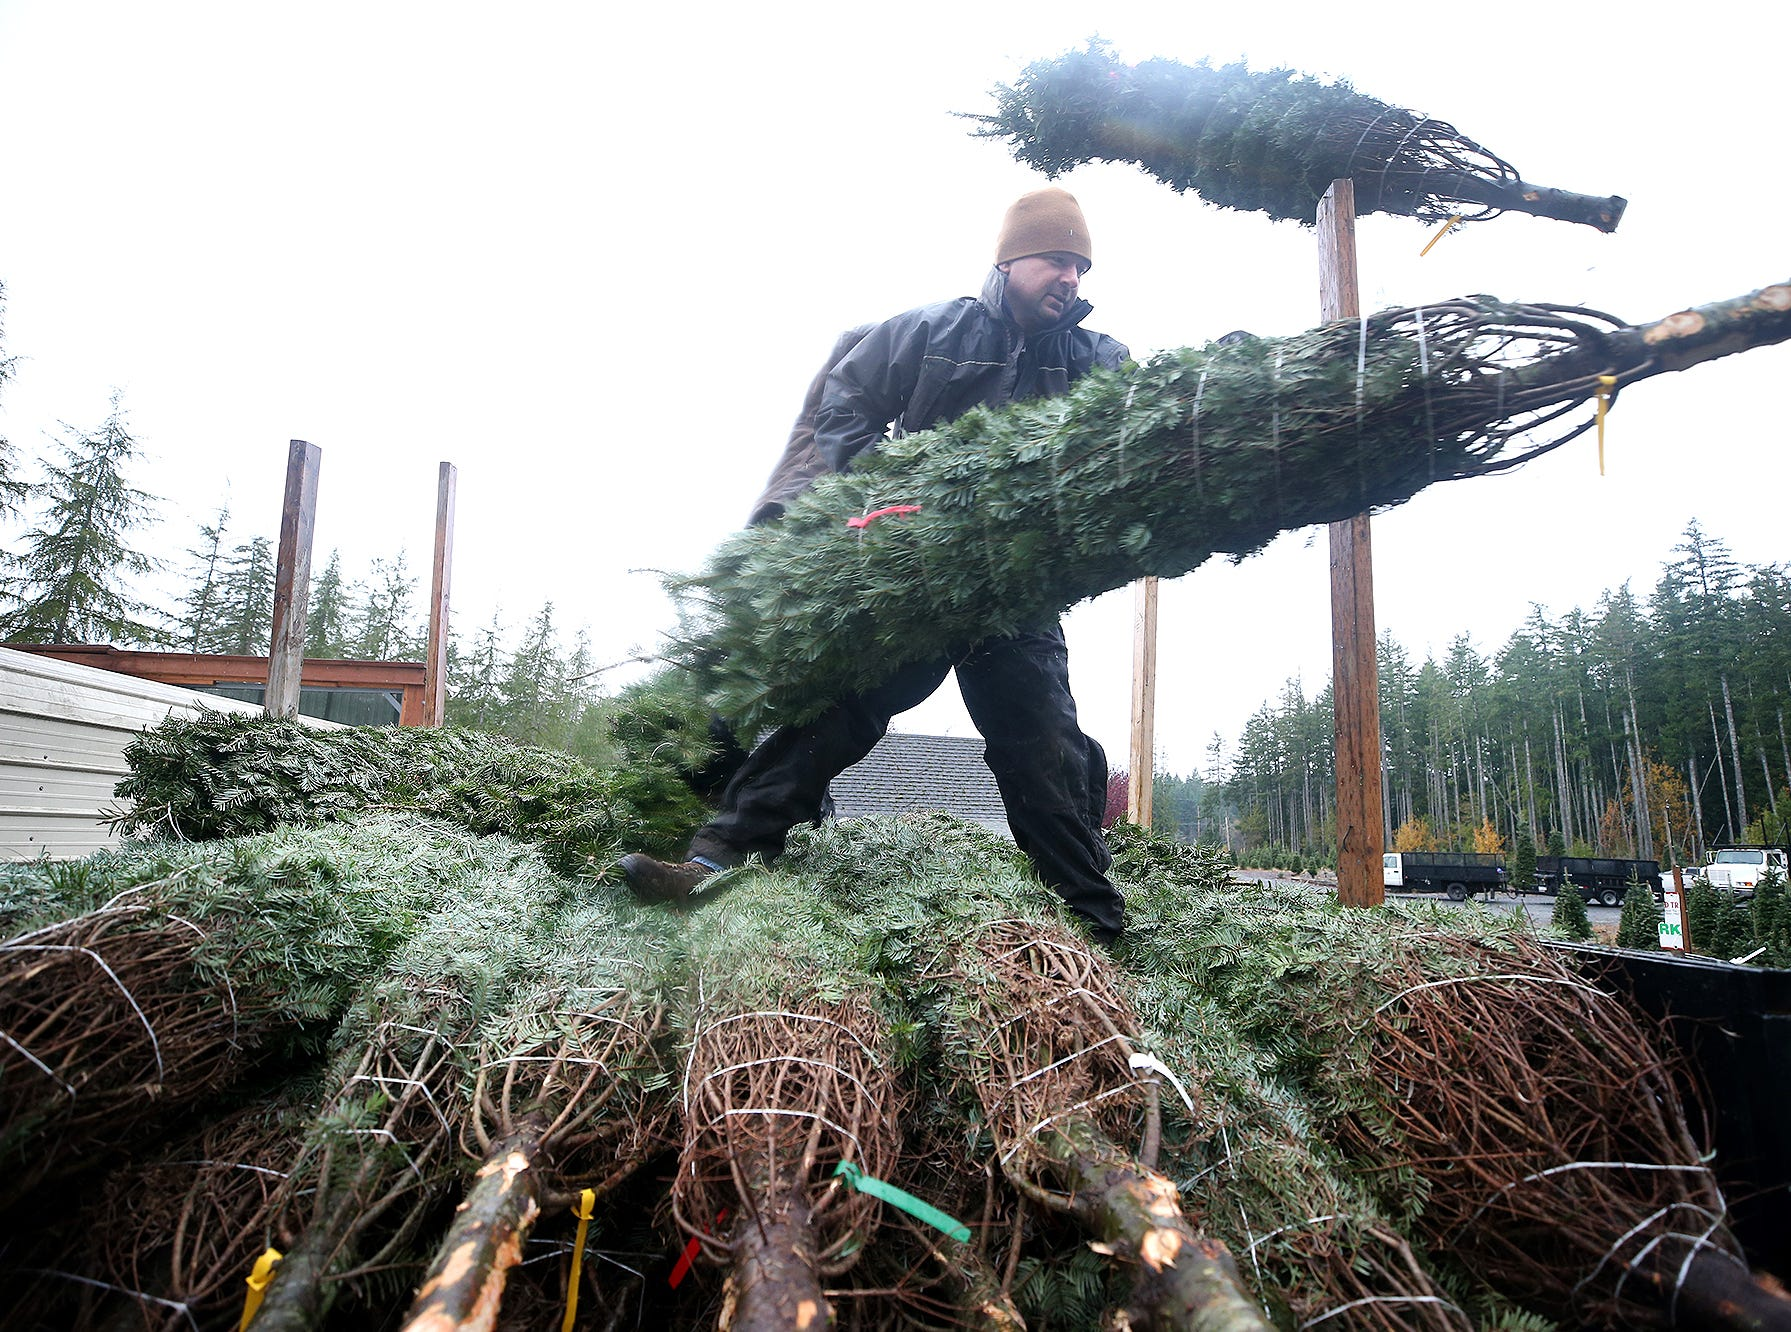 Josh Olmsted unloads a cut Christmas tree on Wednesday, November, 21, 2018 at the tree farm in Poulsbo. The family has run a tree business for 50 years. Friday, November 23, is the opening day for the Poulsbo U-cut tree farm.